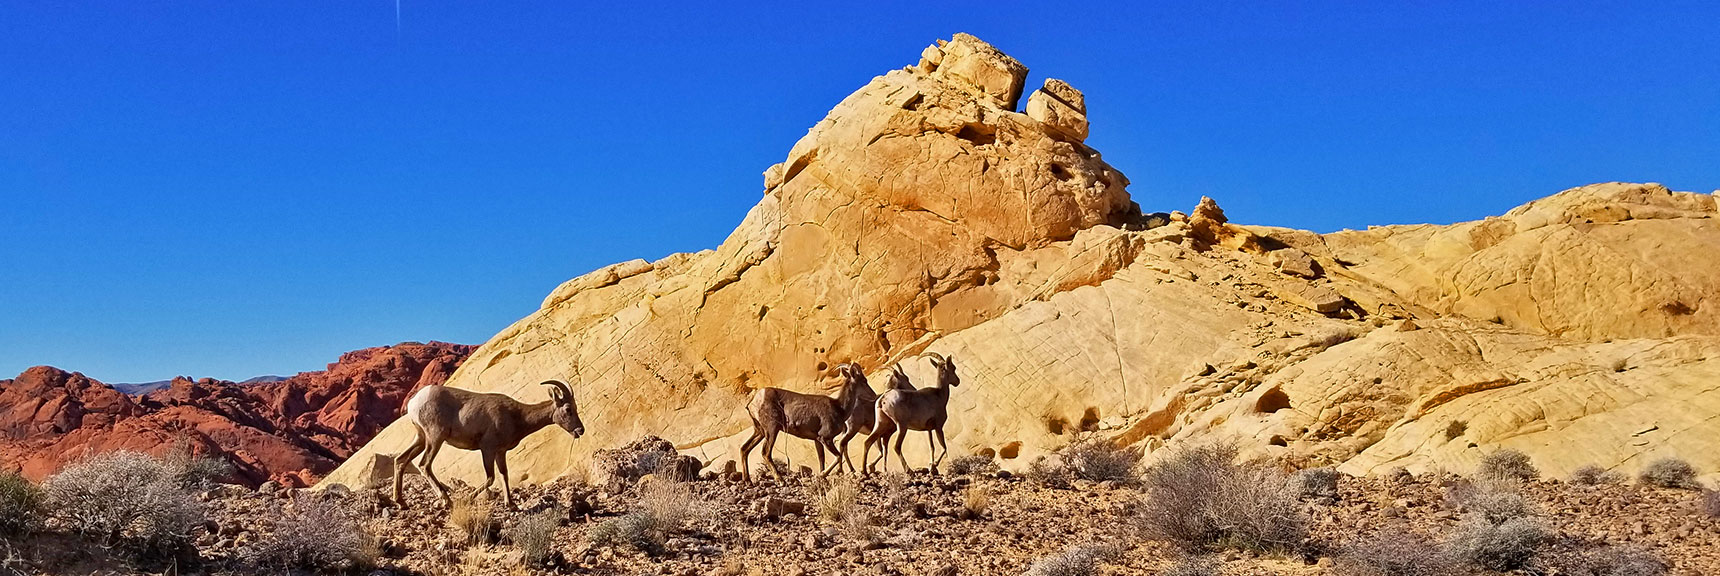 Bighorn Sheep at Silica Dome in Valley of Fire State Park, Nevada